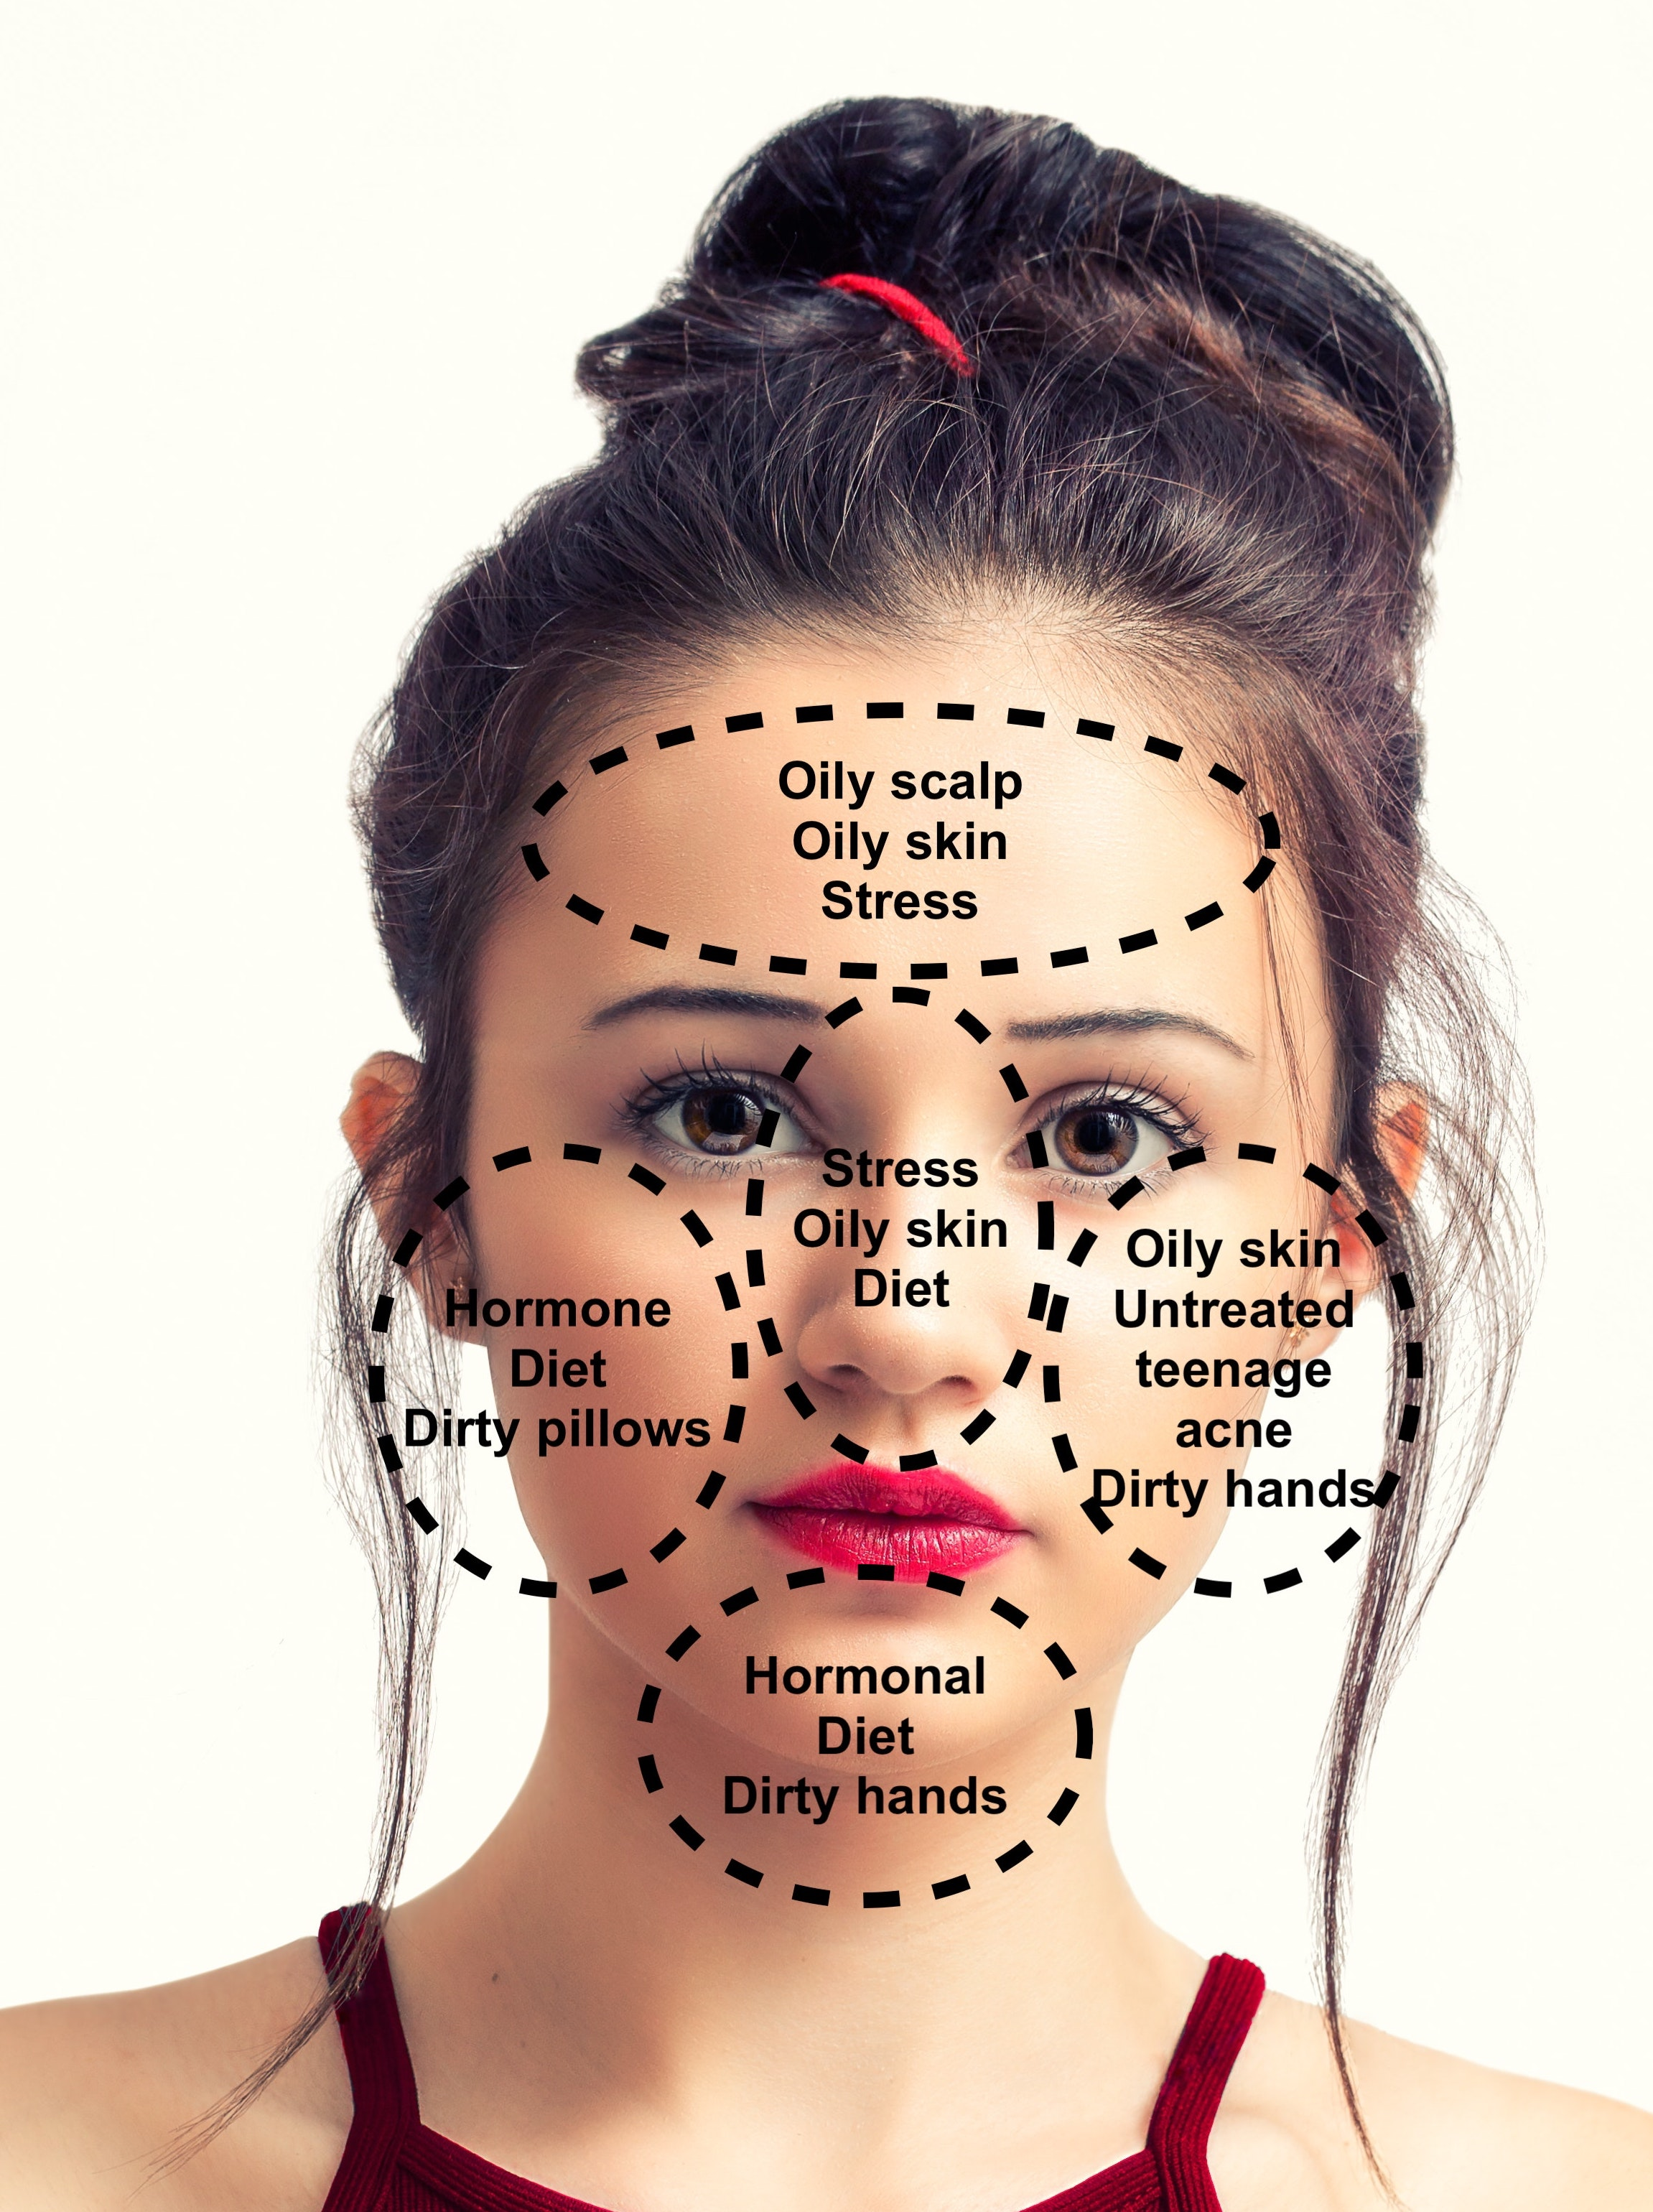 Face Mapping: The Location of Your Break Outs Can Reveal the ... on zit mapping, anxiety mapping, skin mapping, atrial fibrillation mapping, botox mapping, anthrax mapping,